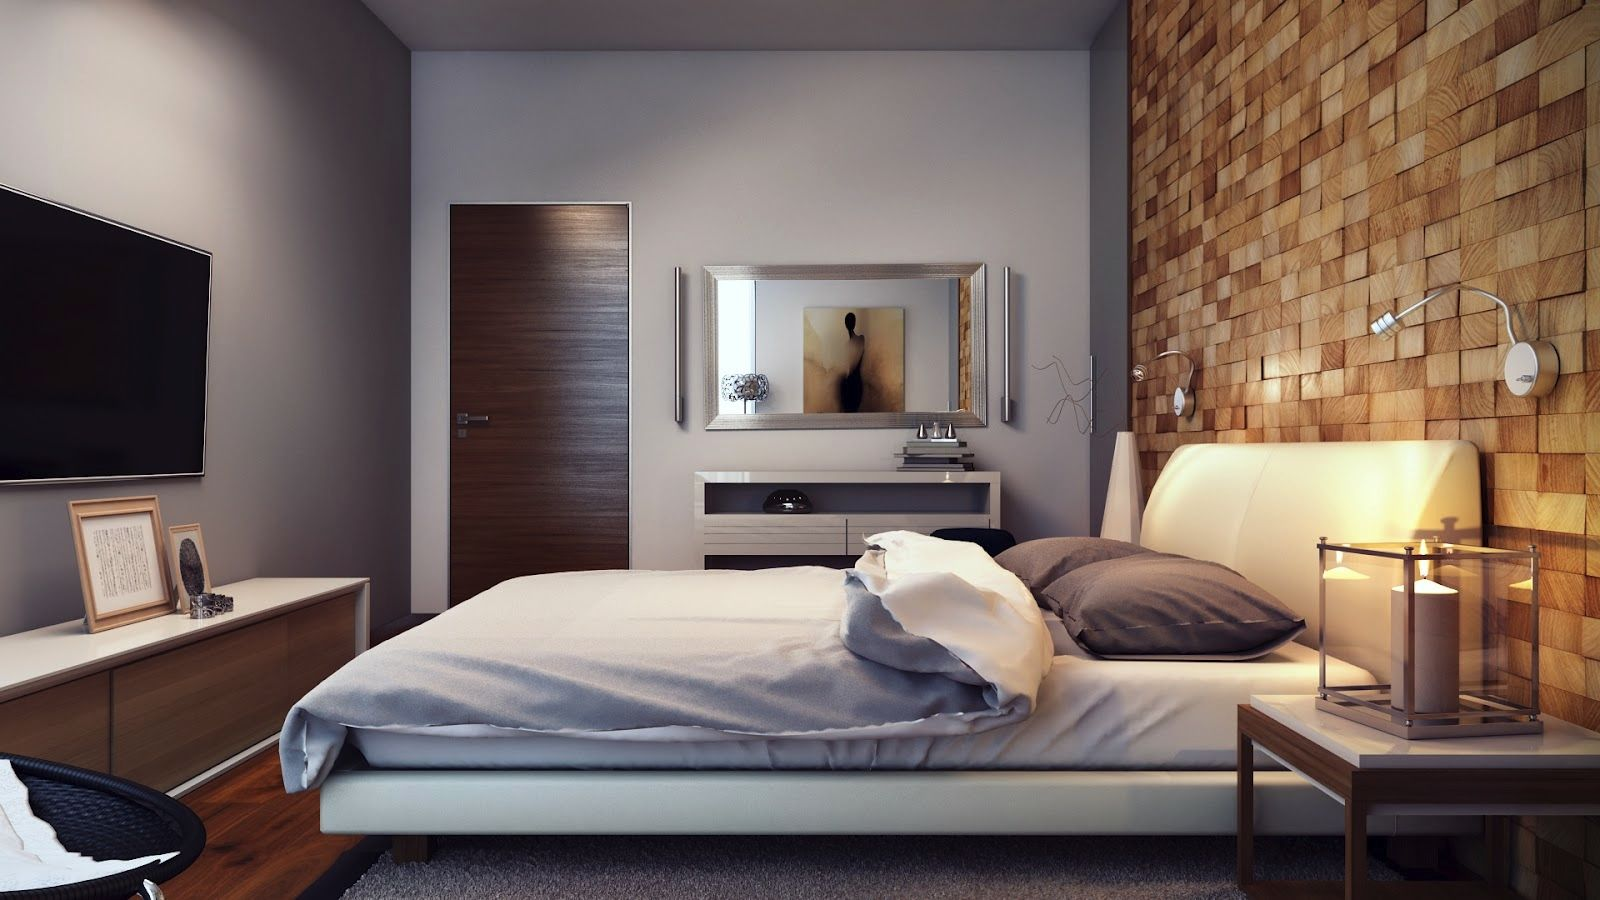 feature walls in living rooms ideas. Light Gray Colour Design Partly Wall Laminate Wooden Floor Brown  Tiles Texturing On Room White Bed Sofa With Simple And Beautiful Minimalist Bedroom Stainless Steel Modern